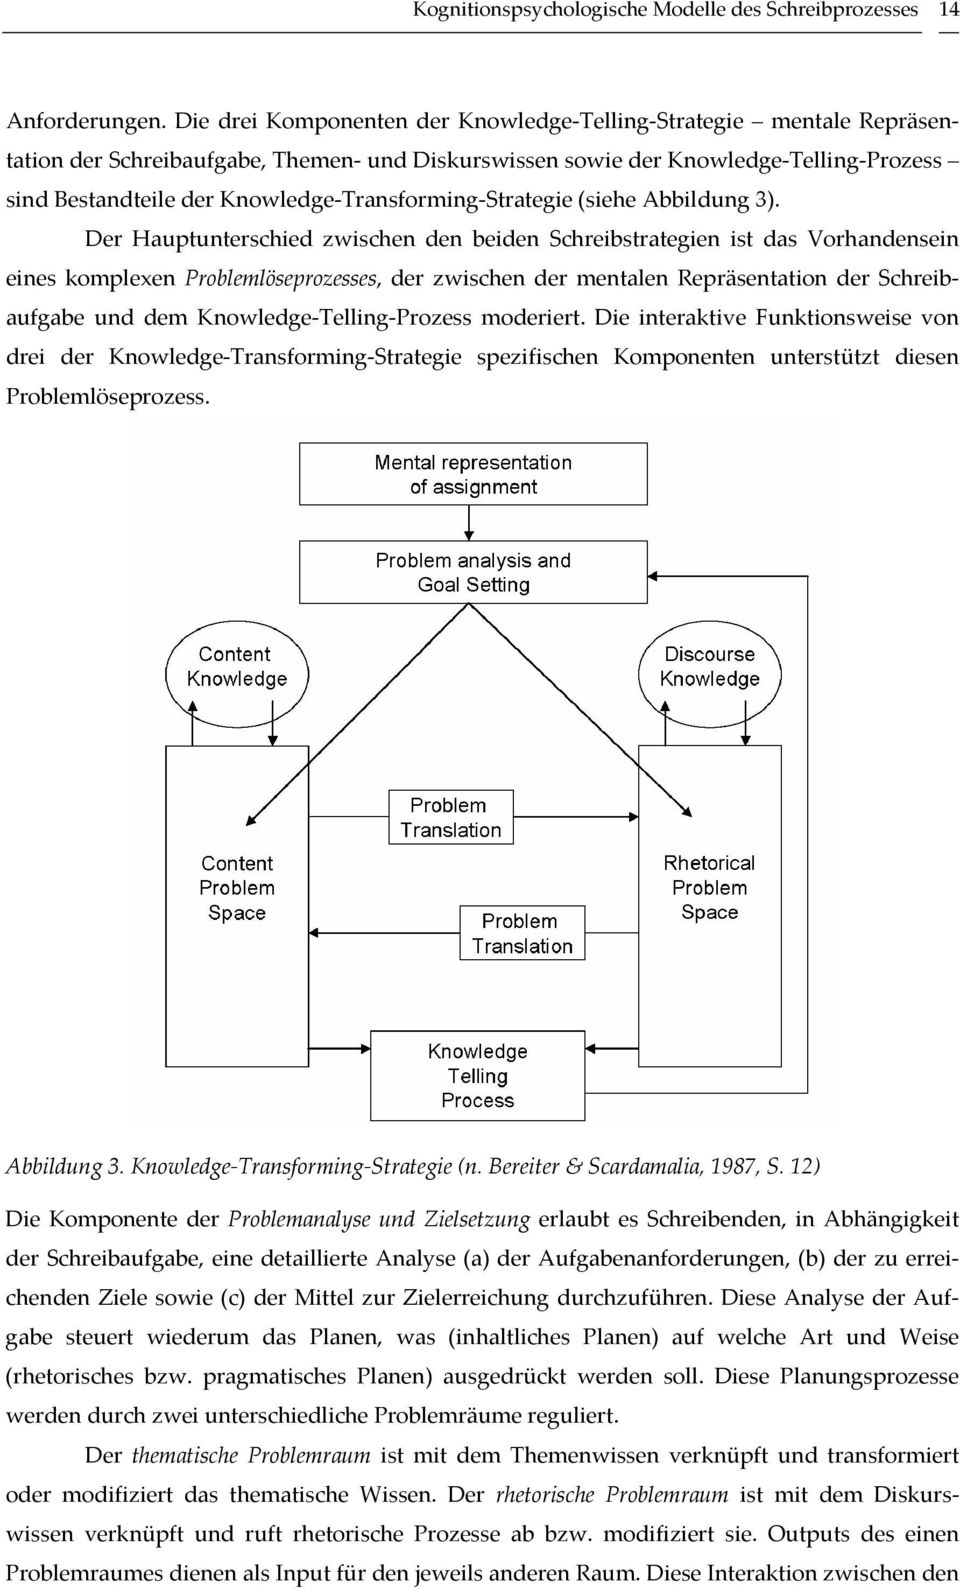 Knowledge-Transforming-Strategie (siehe Abbildung 3).